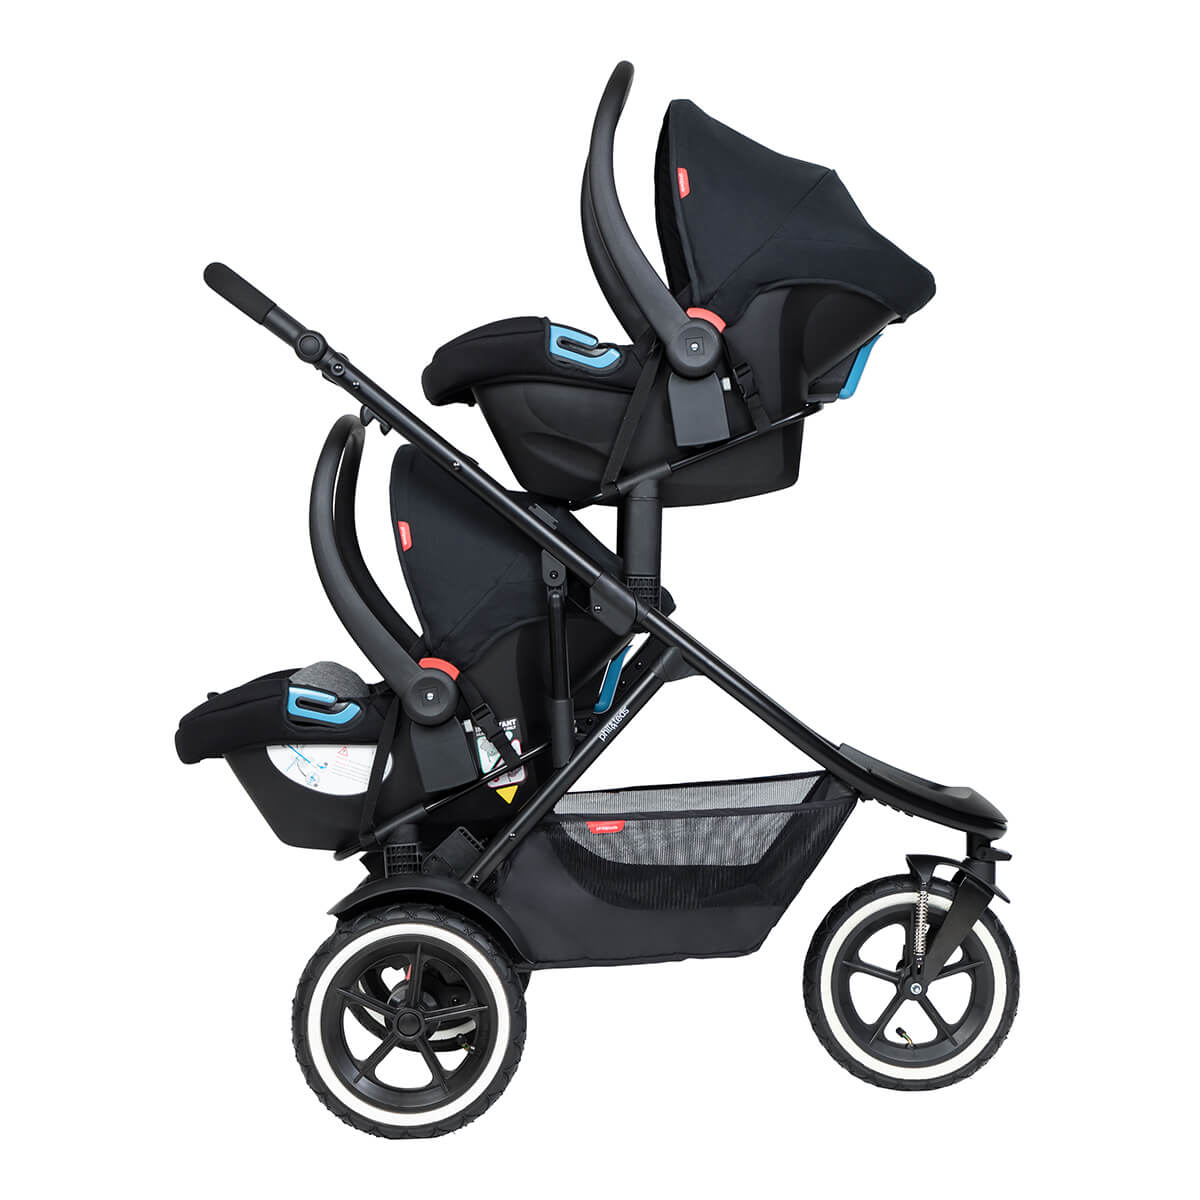 https://cdn.accentuate.io/4509527539800/19272668414040/philteds-sport-buggy-with-double-alpha-travel-system-v1626484359946.jpg?1200x1200